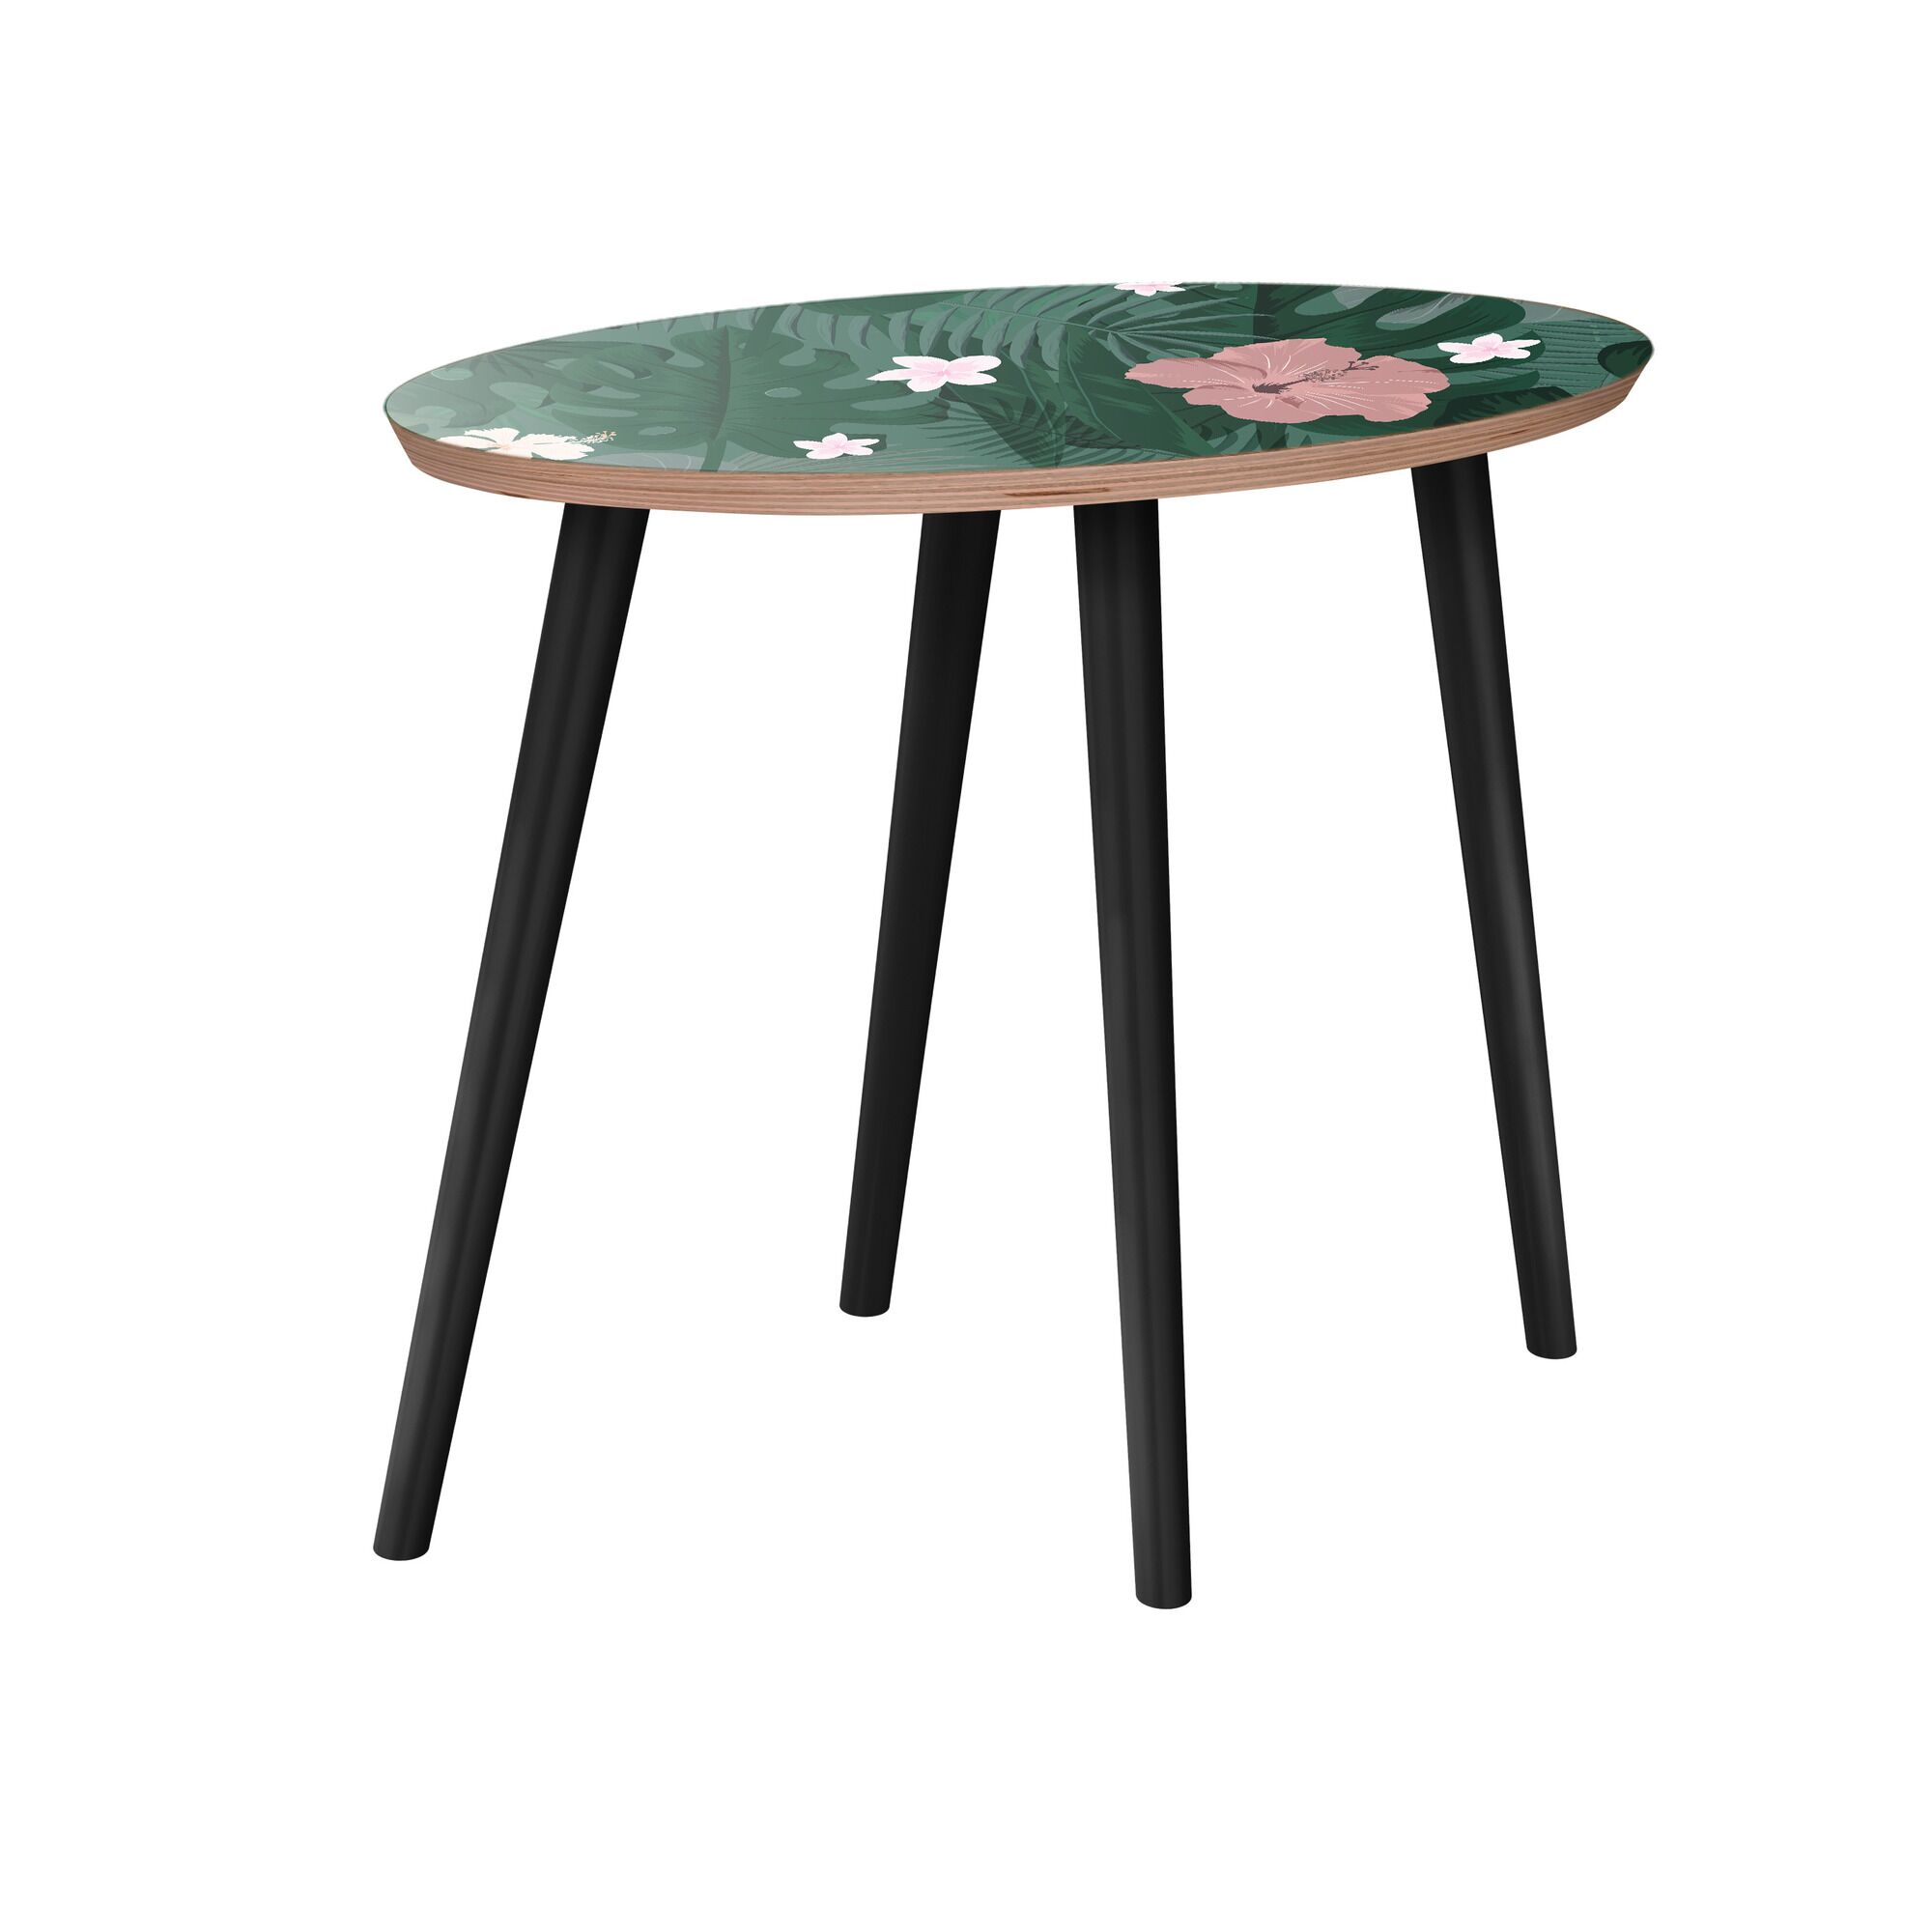 Killdeer End Table Table Base Color: Black, Table Top Color: Walnut